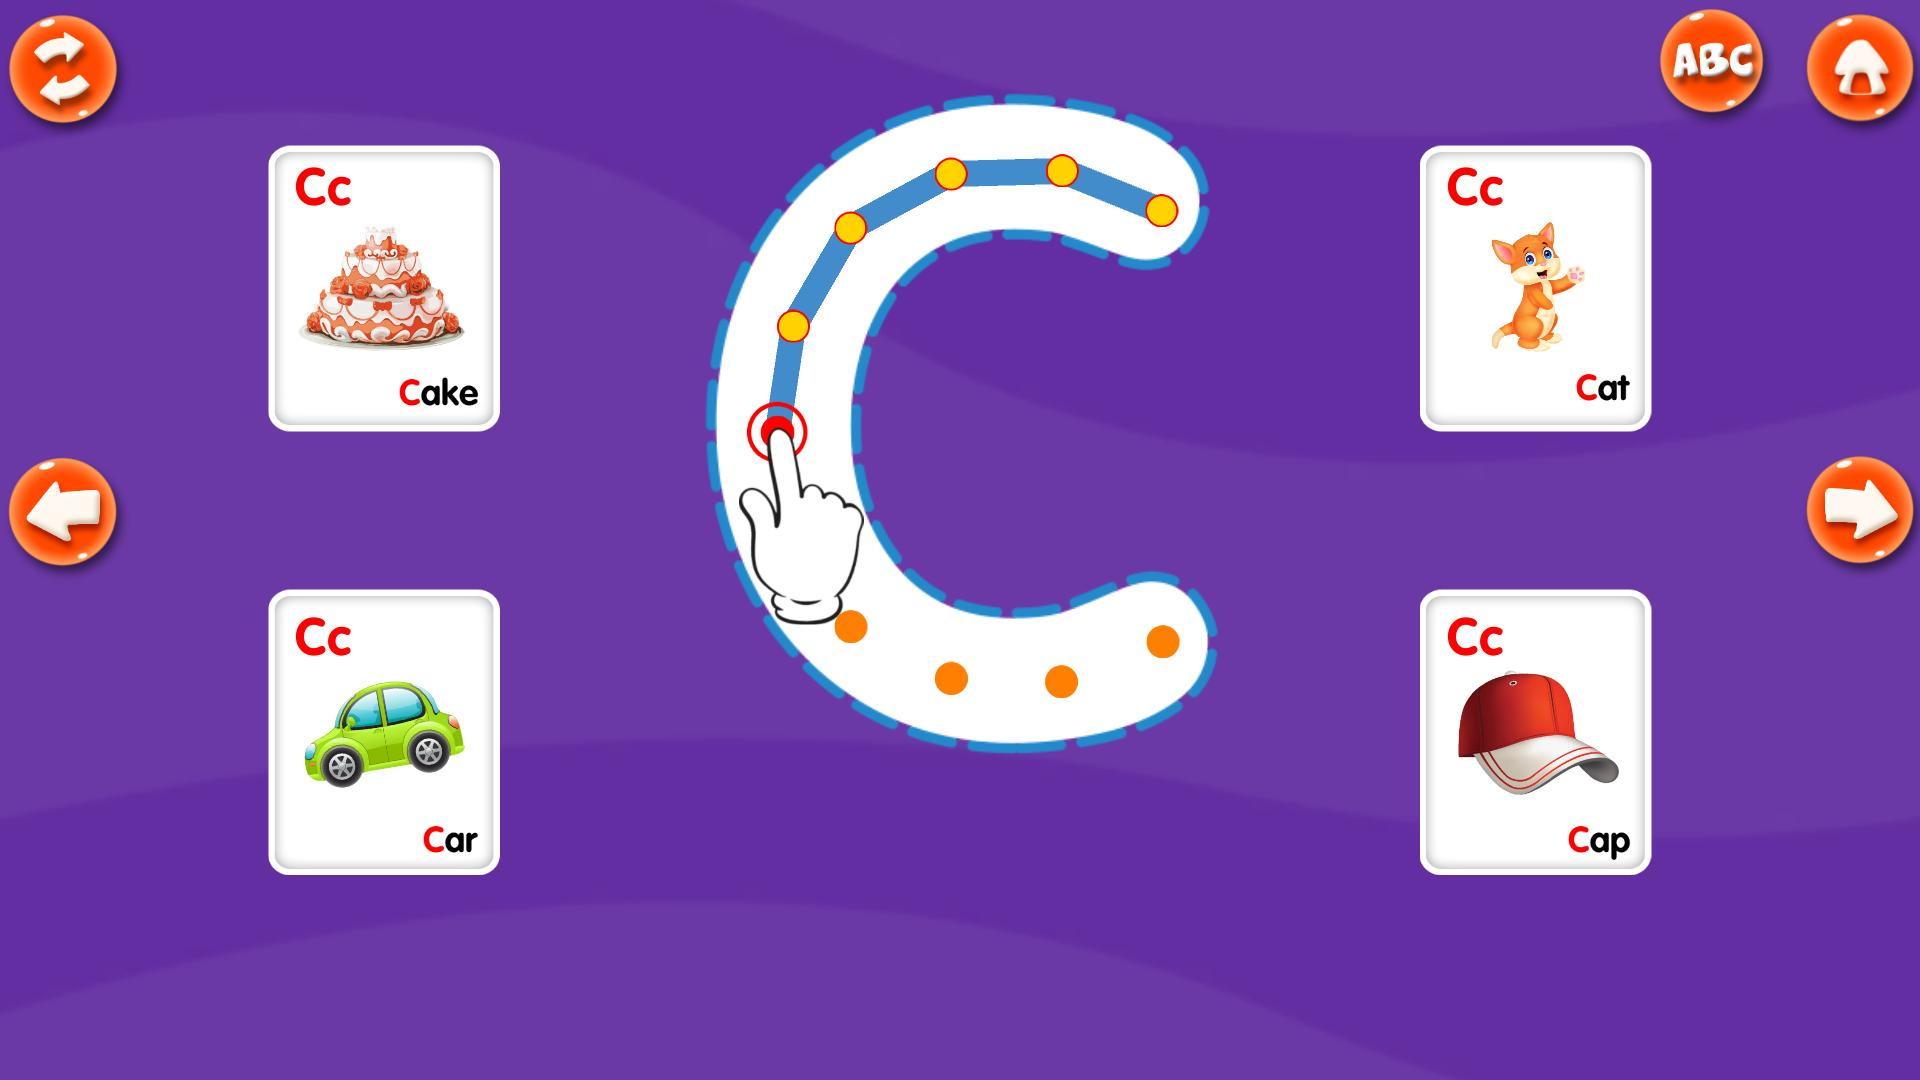 Abc Alphabet Tracing For Android - Apk Download intended for Alphabet Tracing Game App